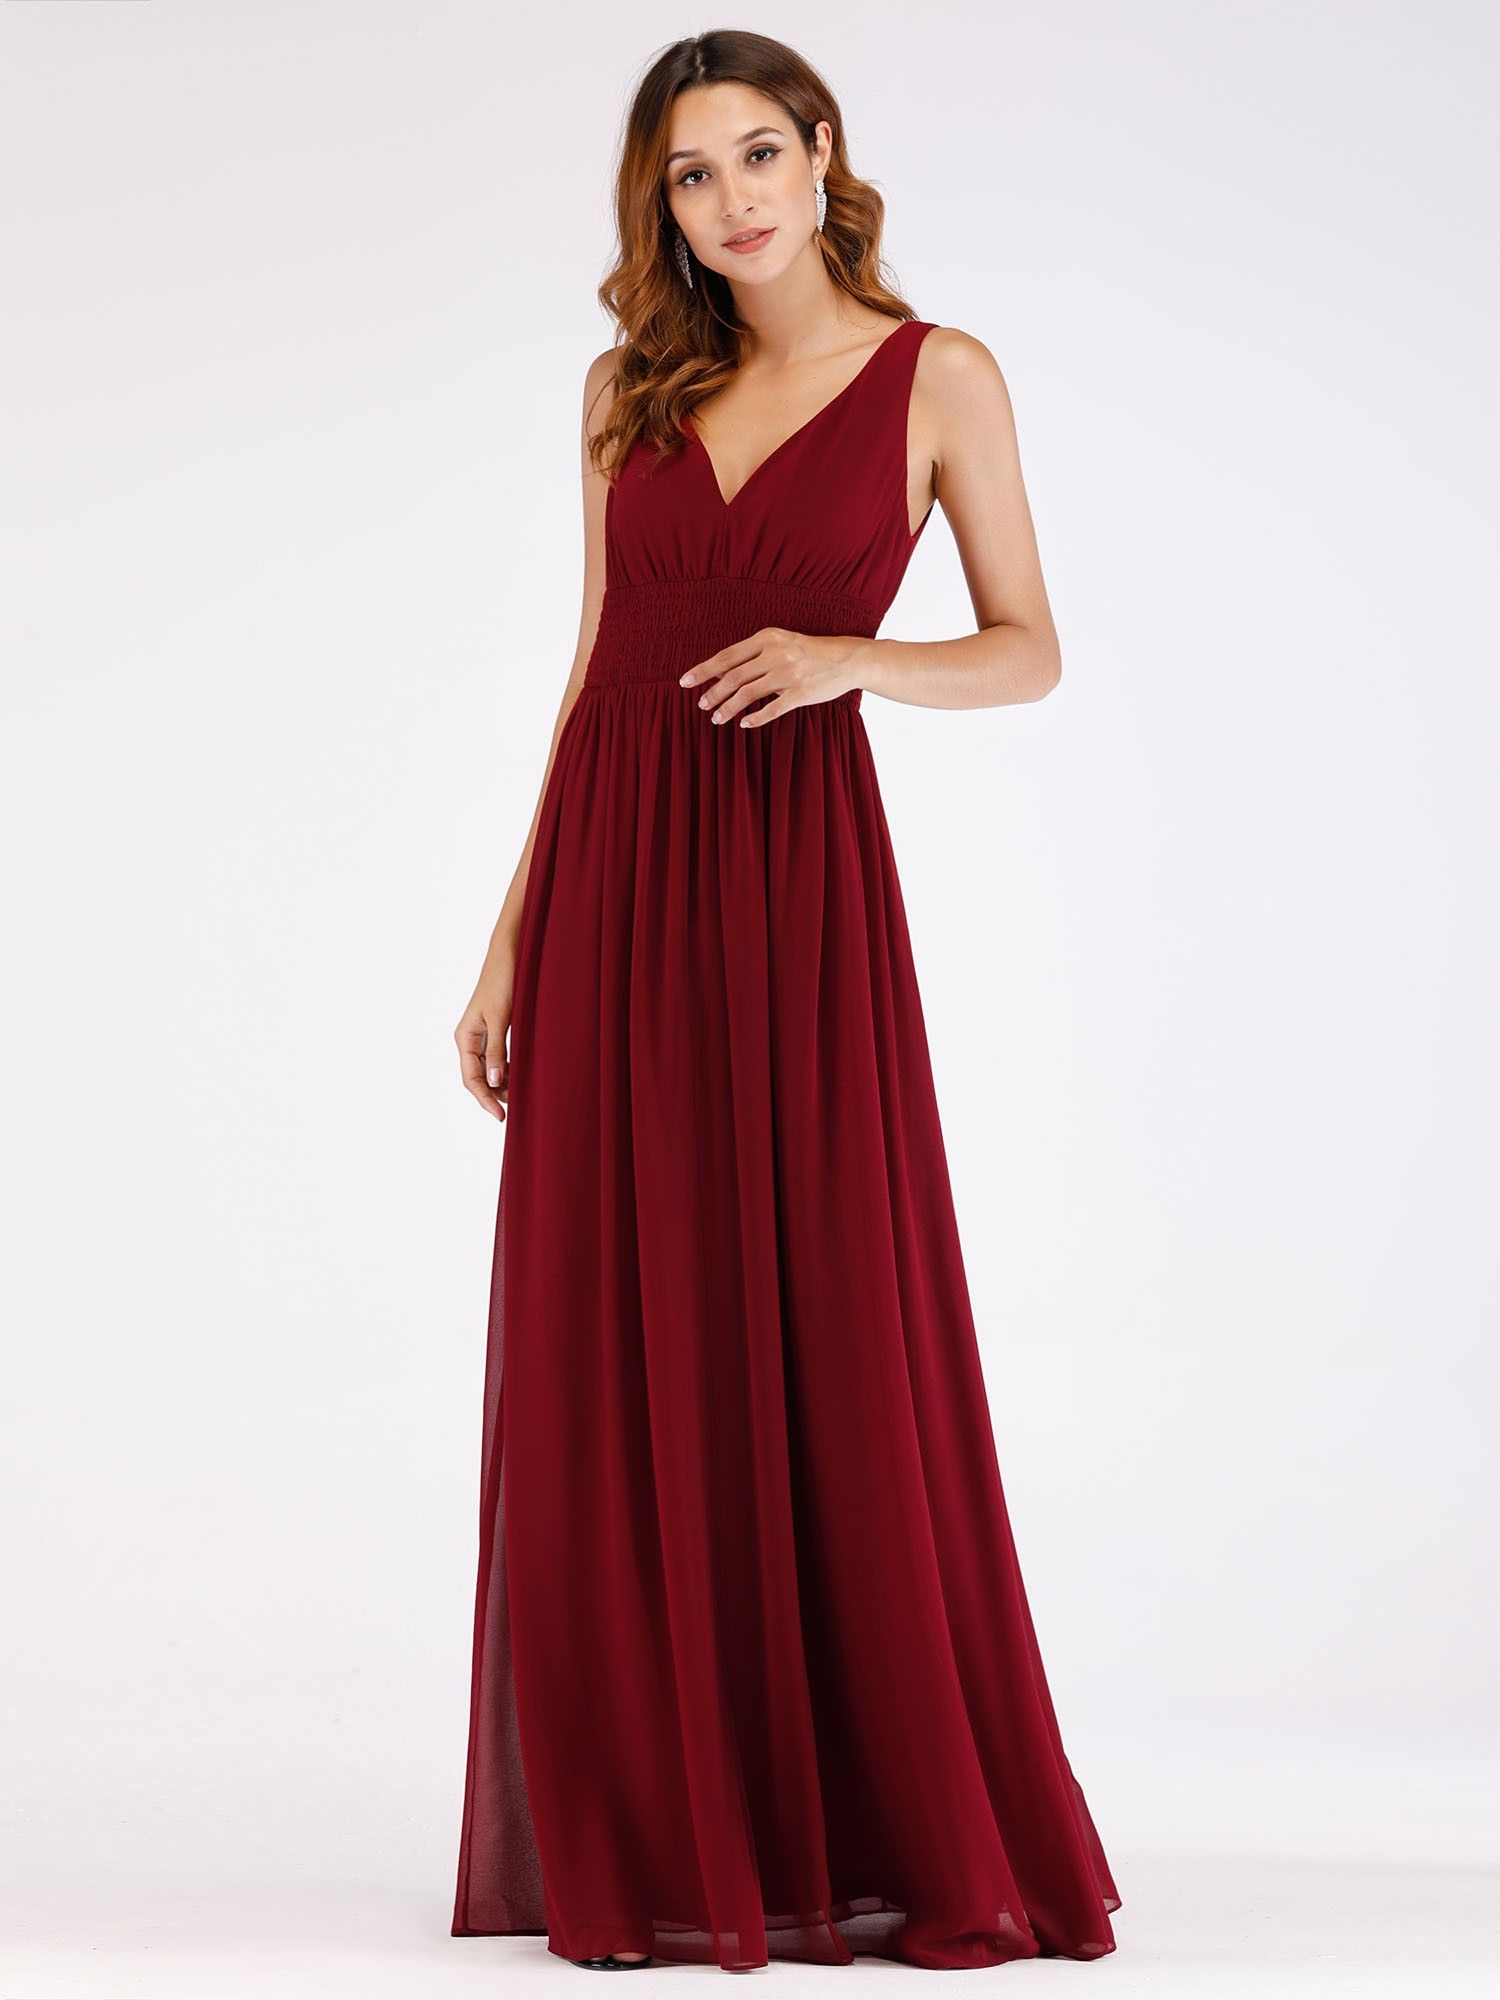 c8be18289a75a Floor Length Semi Formal Stretchy Maxi Dress | Ever-Pretty ...